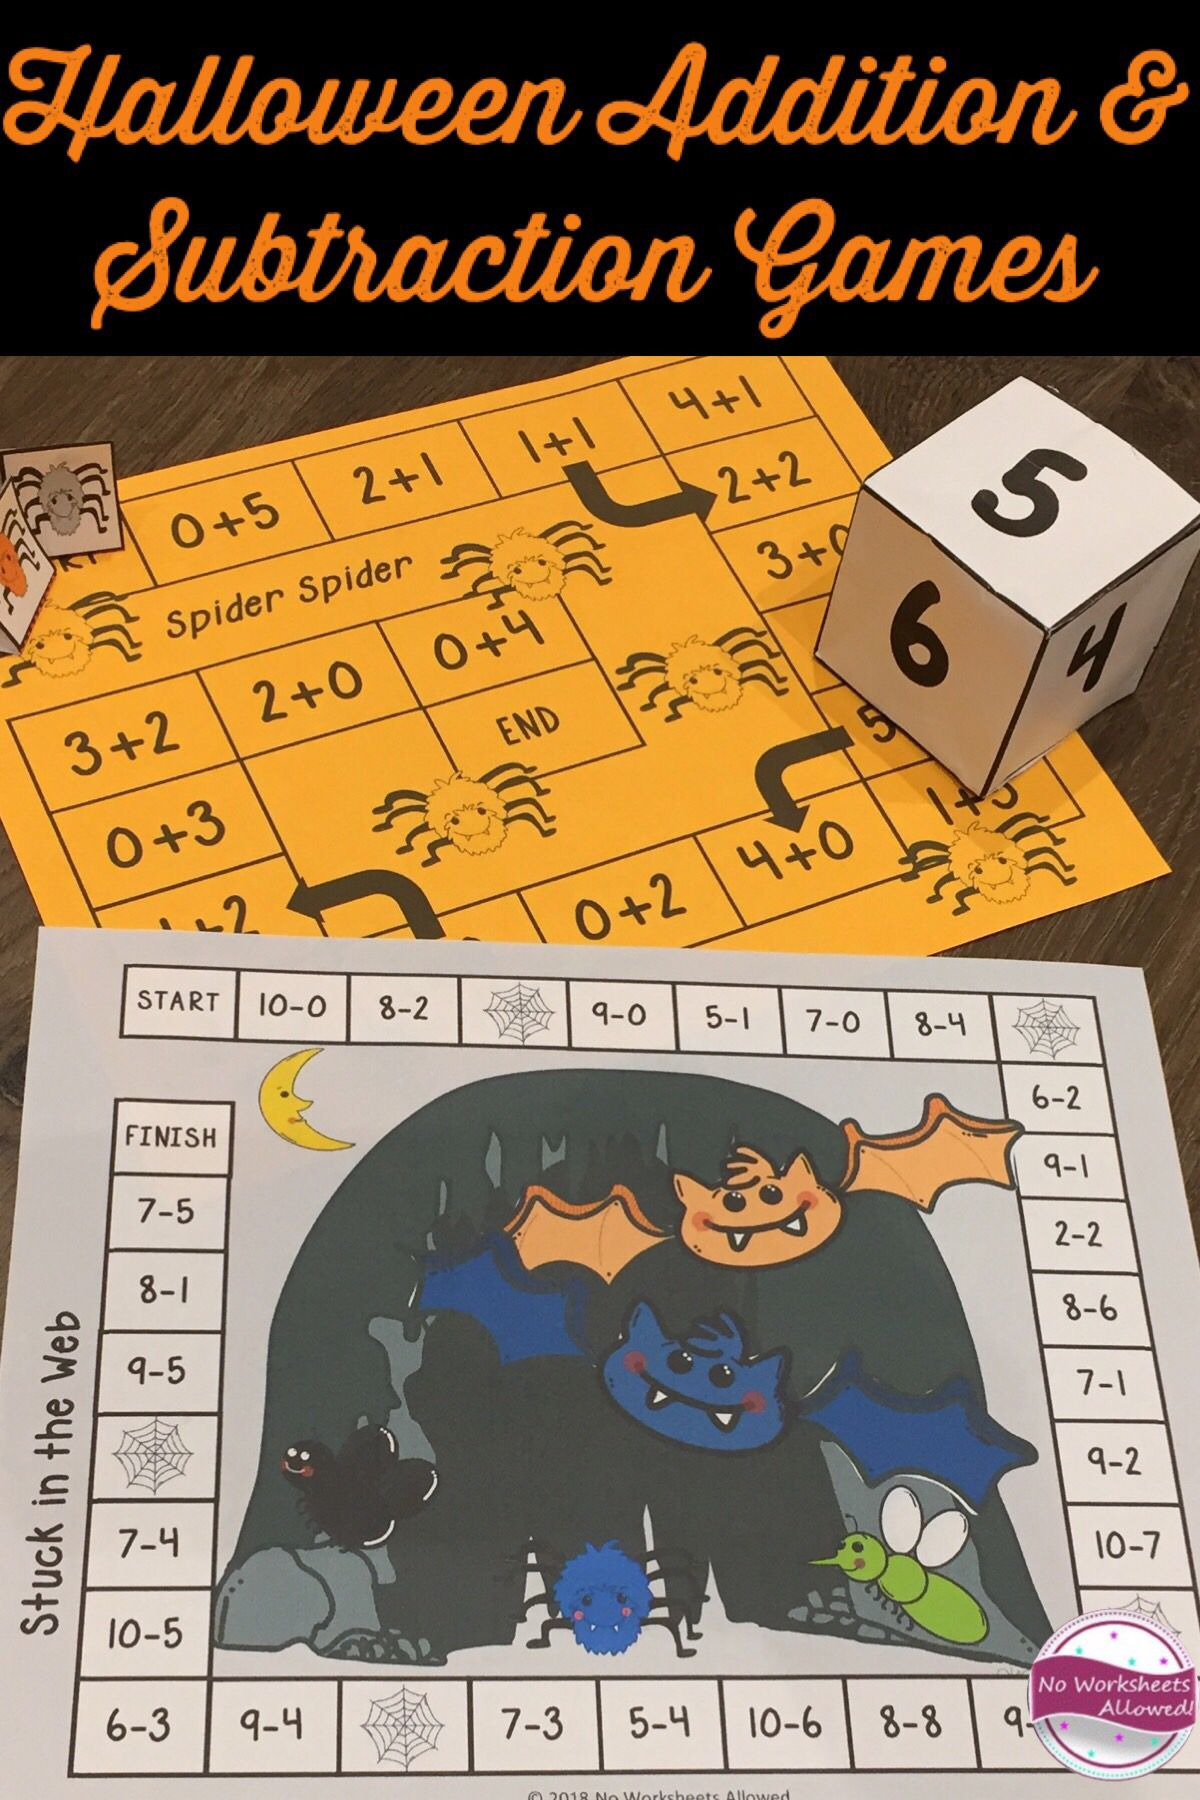 Halloween Addition And Subtraction Games Within 10